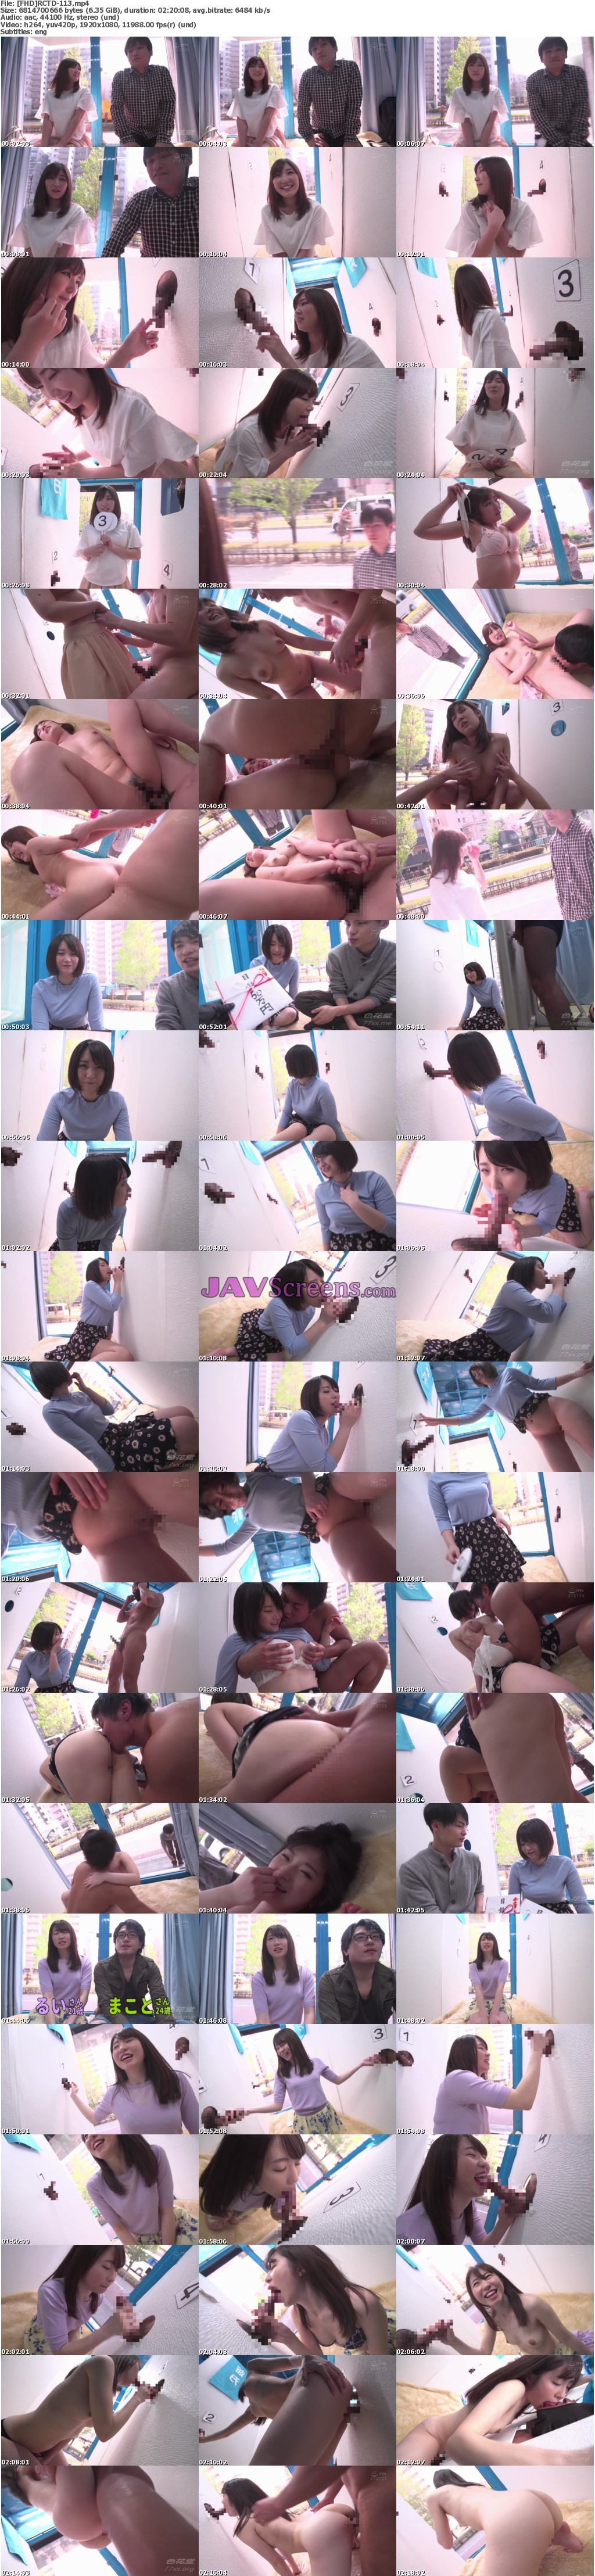 RCTD-113.jpg - JAV Screenshot